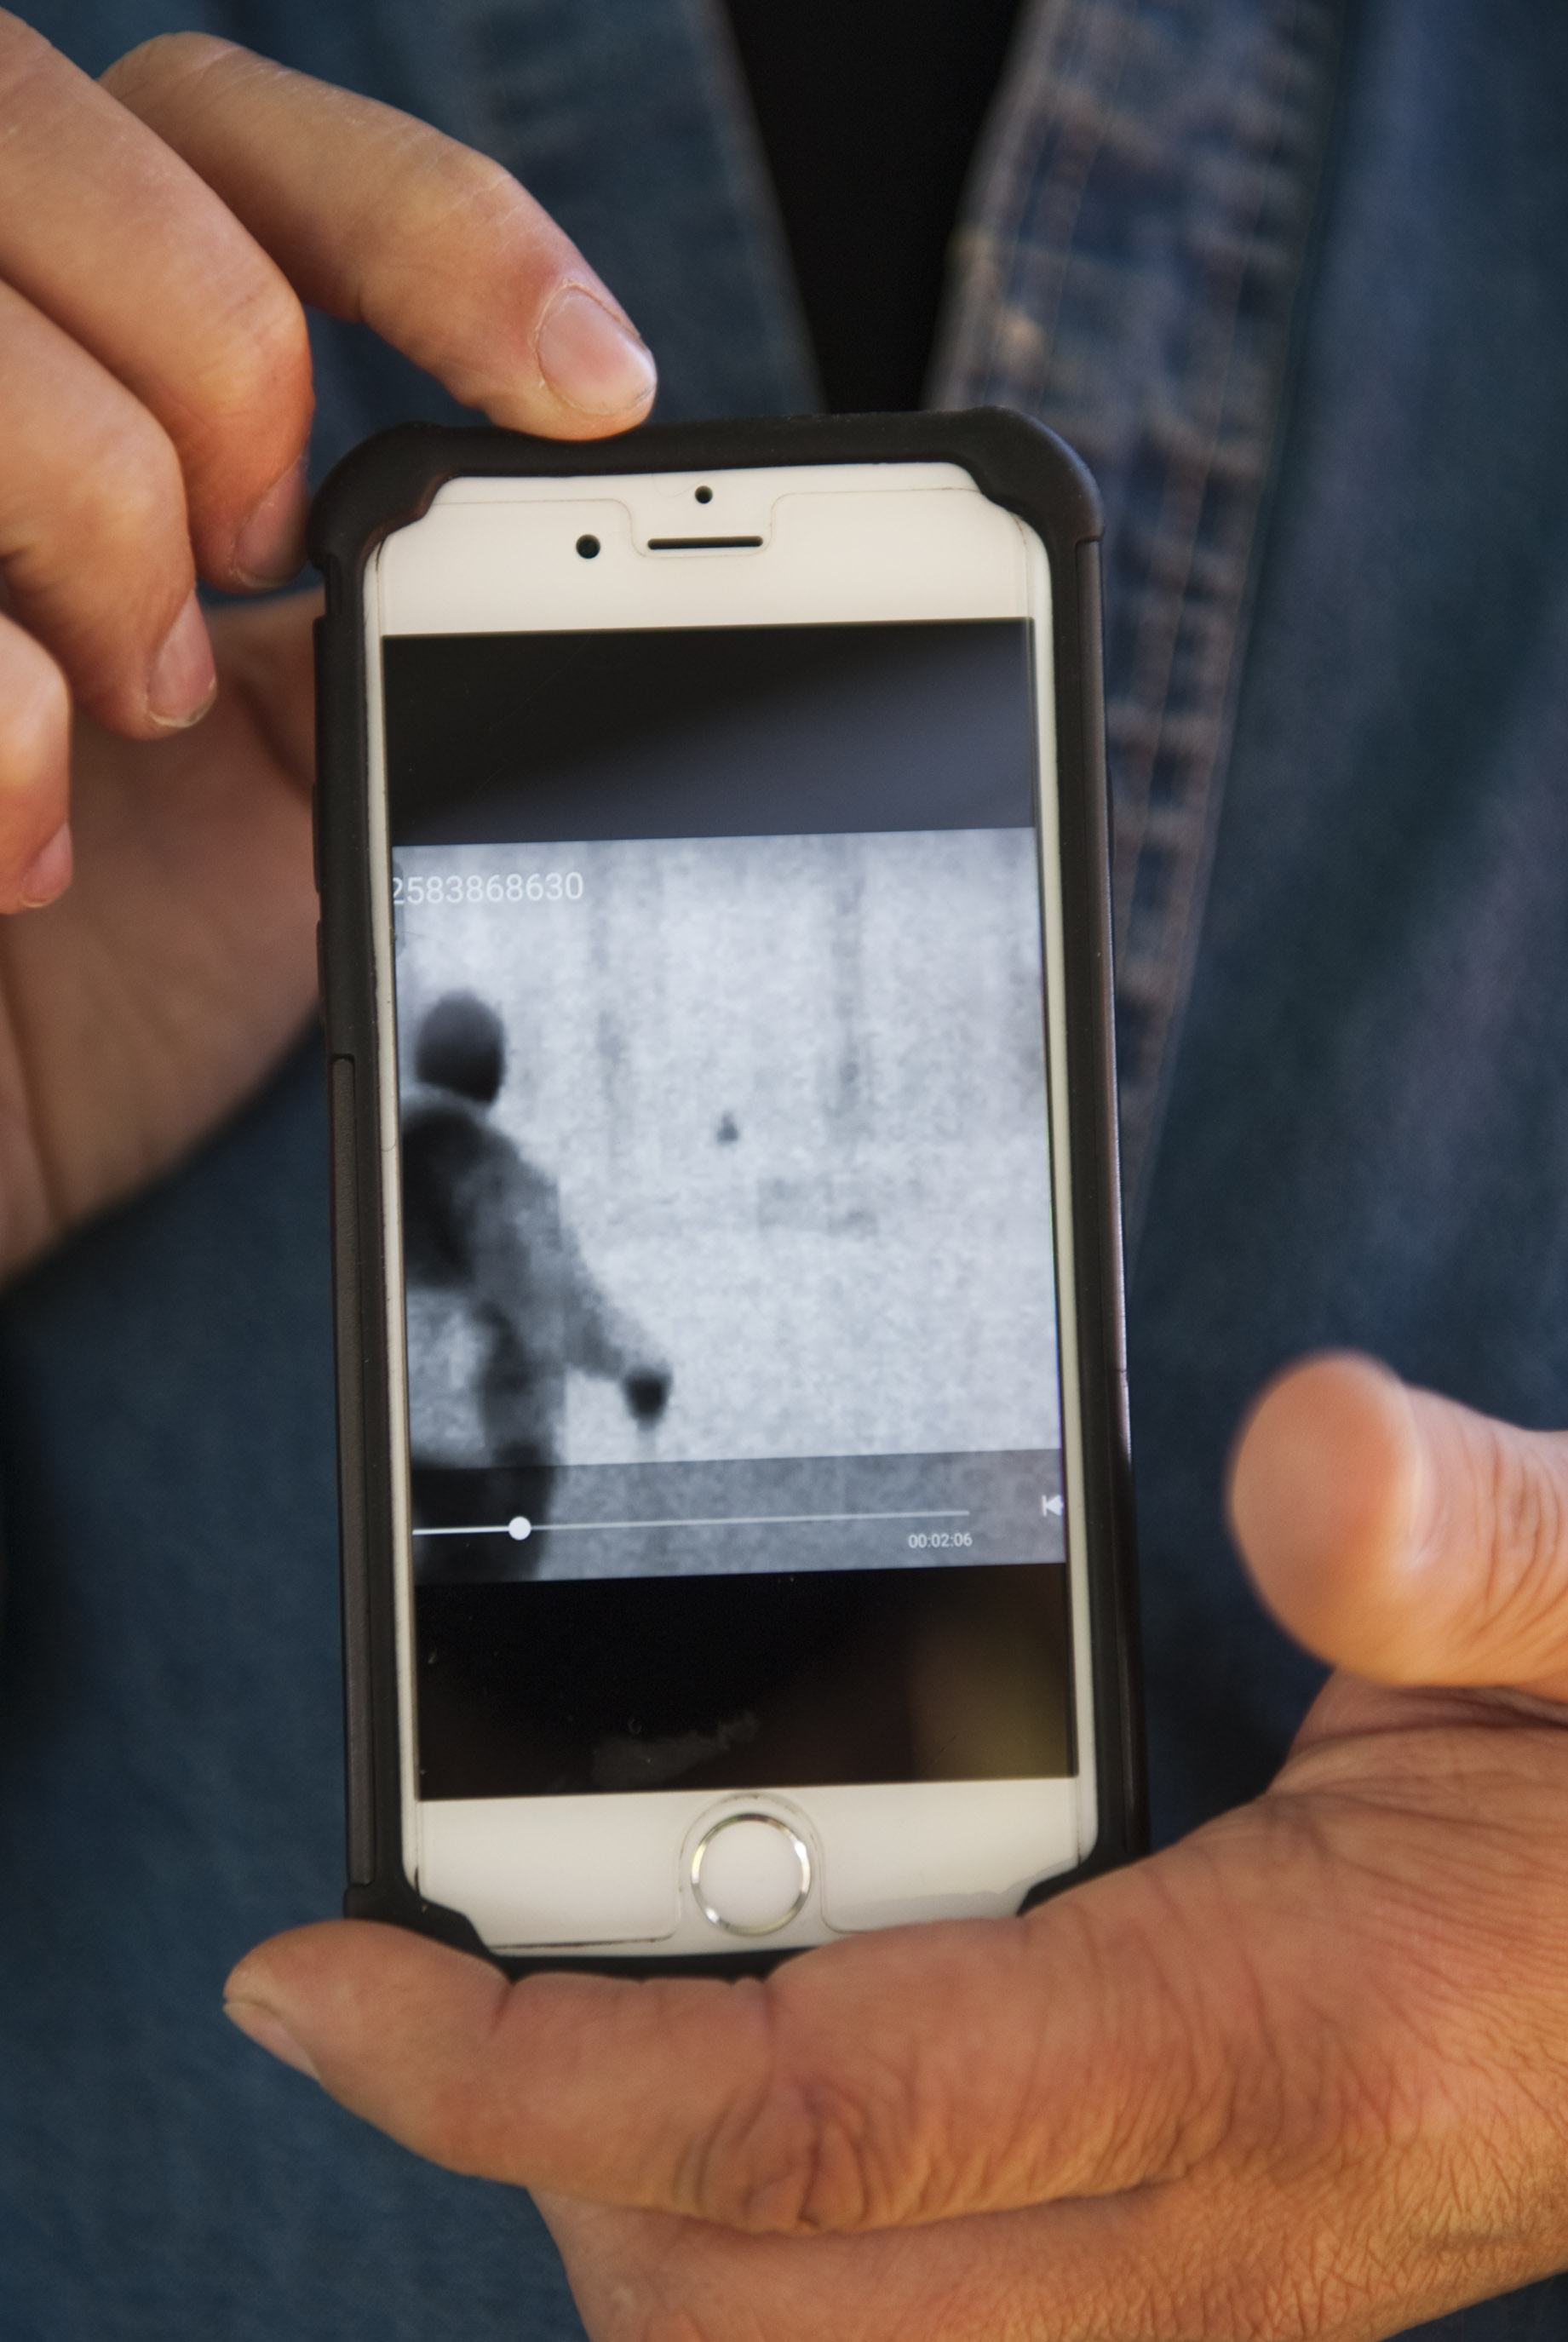 """Chuck Comini of Hutchinson, a Bigfoot skeptic who supports his wife Annie who is a believer, shows a screenshot of a thermal image captured by former licensed private Investigator of 19 years Steve Kulls from Sasquatch Detective Radio the day after on a night research hike during the 2016 Pennsylvania Bigfoot Camping Adventure at Benner's Meadow Run campground near Farmington on Saturday, May 7. """"Last night made me believe more but I'm still not 100 percent sold,"""" Comini said. """"There were three guys there, all hunters, and we all said it was nothing we ever heard in the woods before."""" The Farmington area has been known as a Bigfoot hotbed with numerous encounters reported by campers, hunters and locals."""